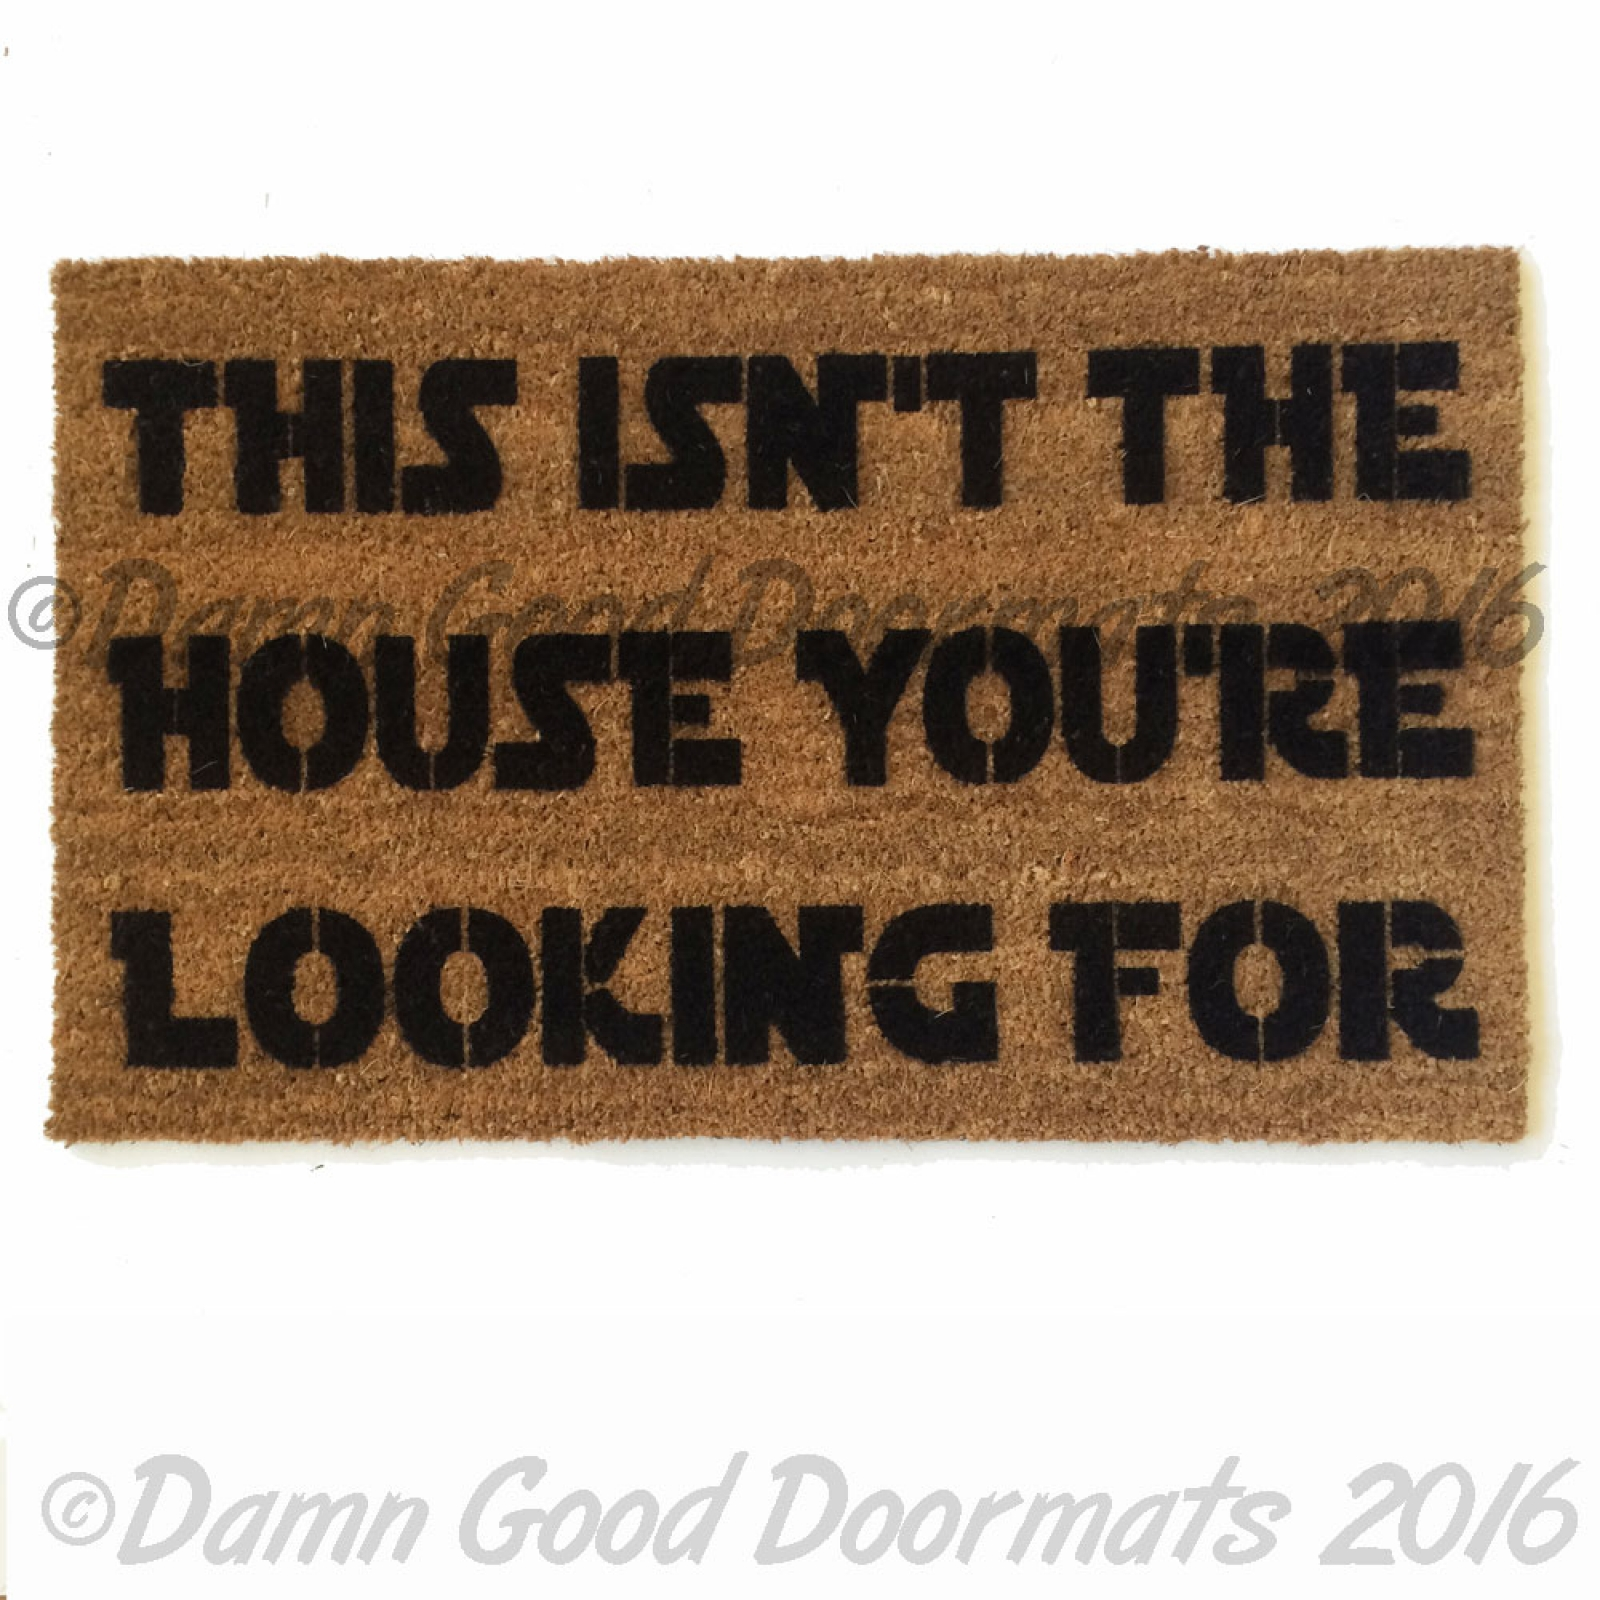 We have the droids you 39 re looking for scifi doormat damn good doormats - Geeky doormats ...